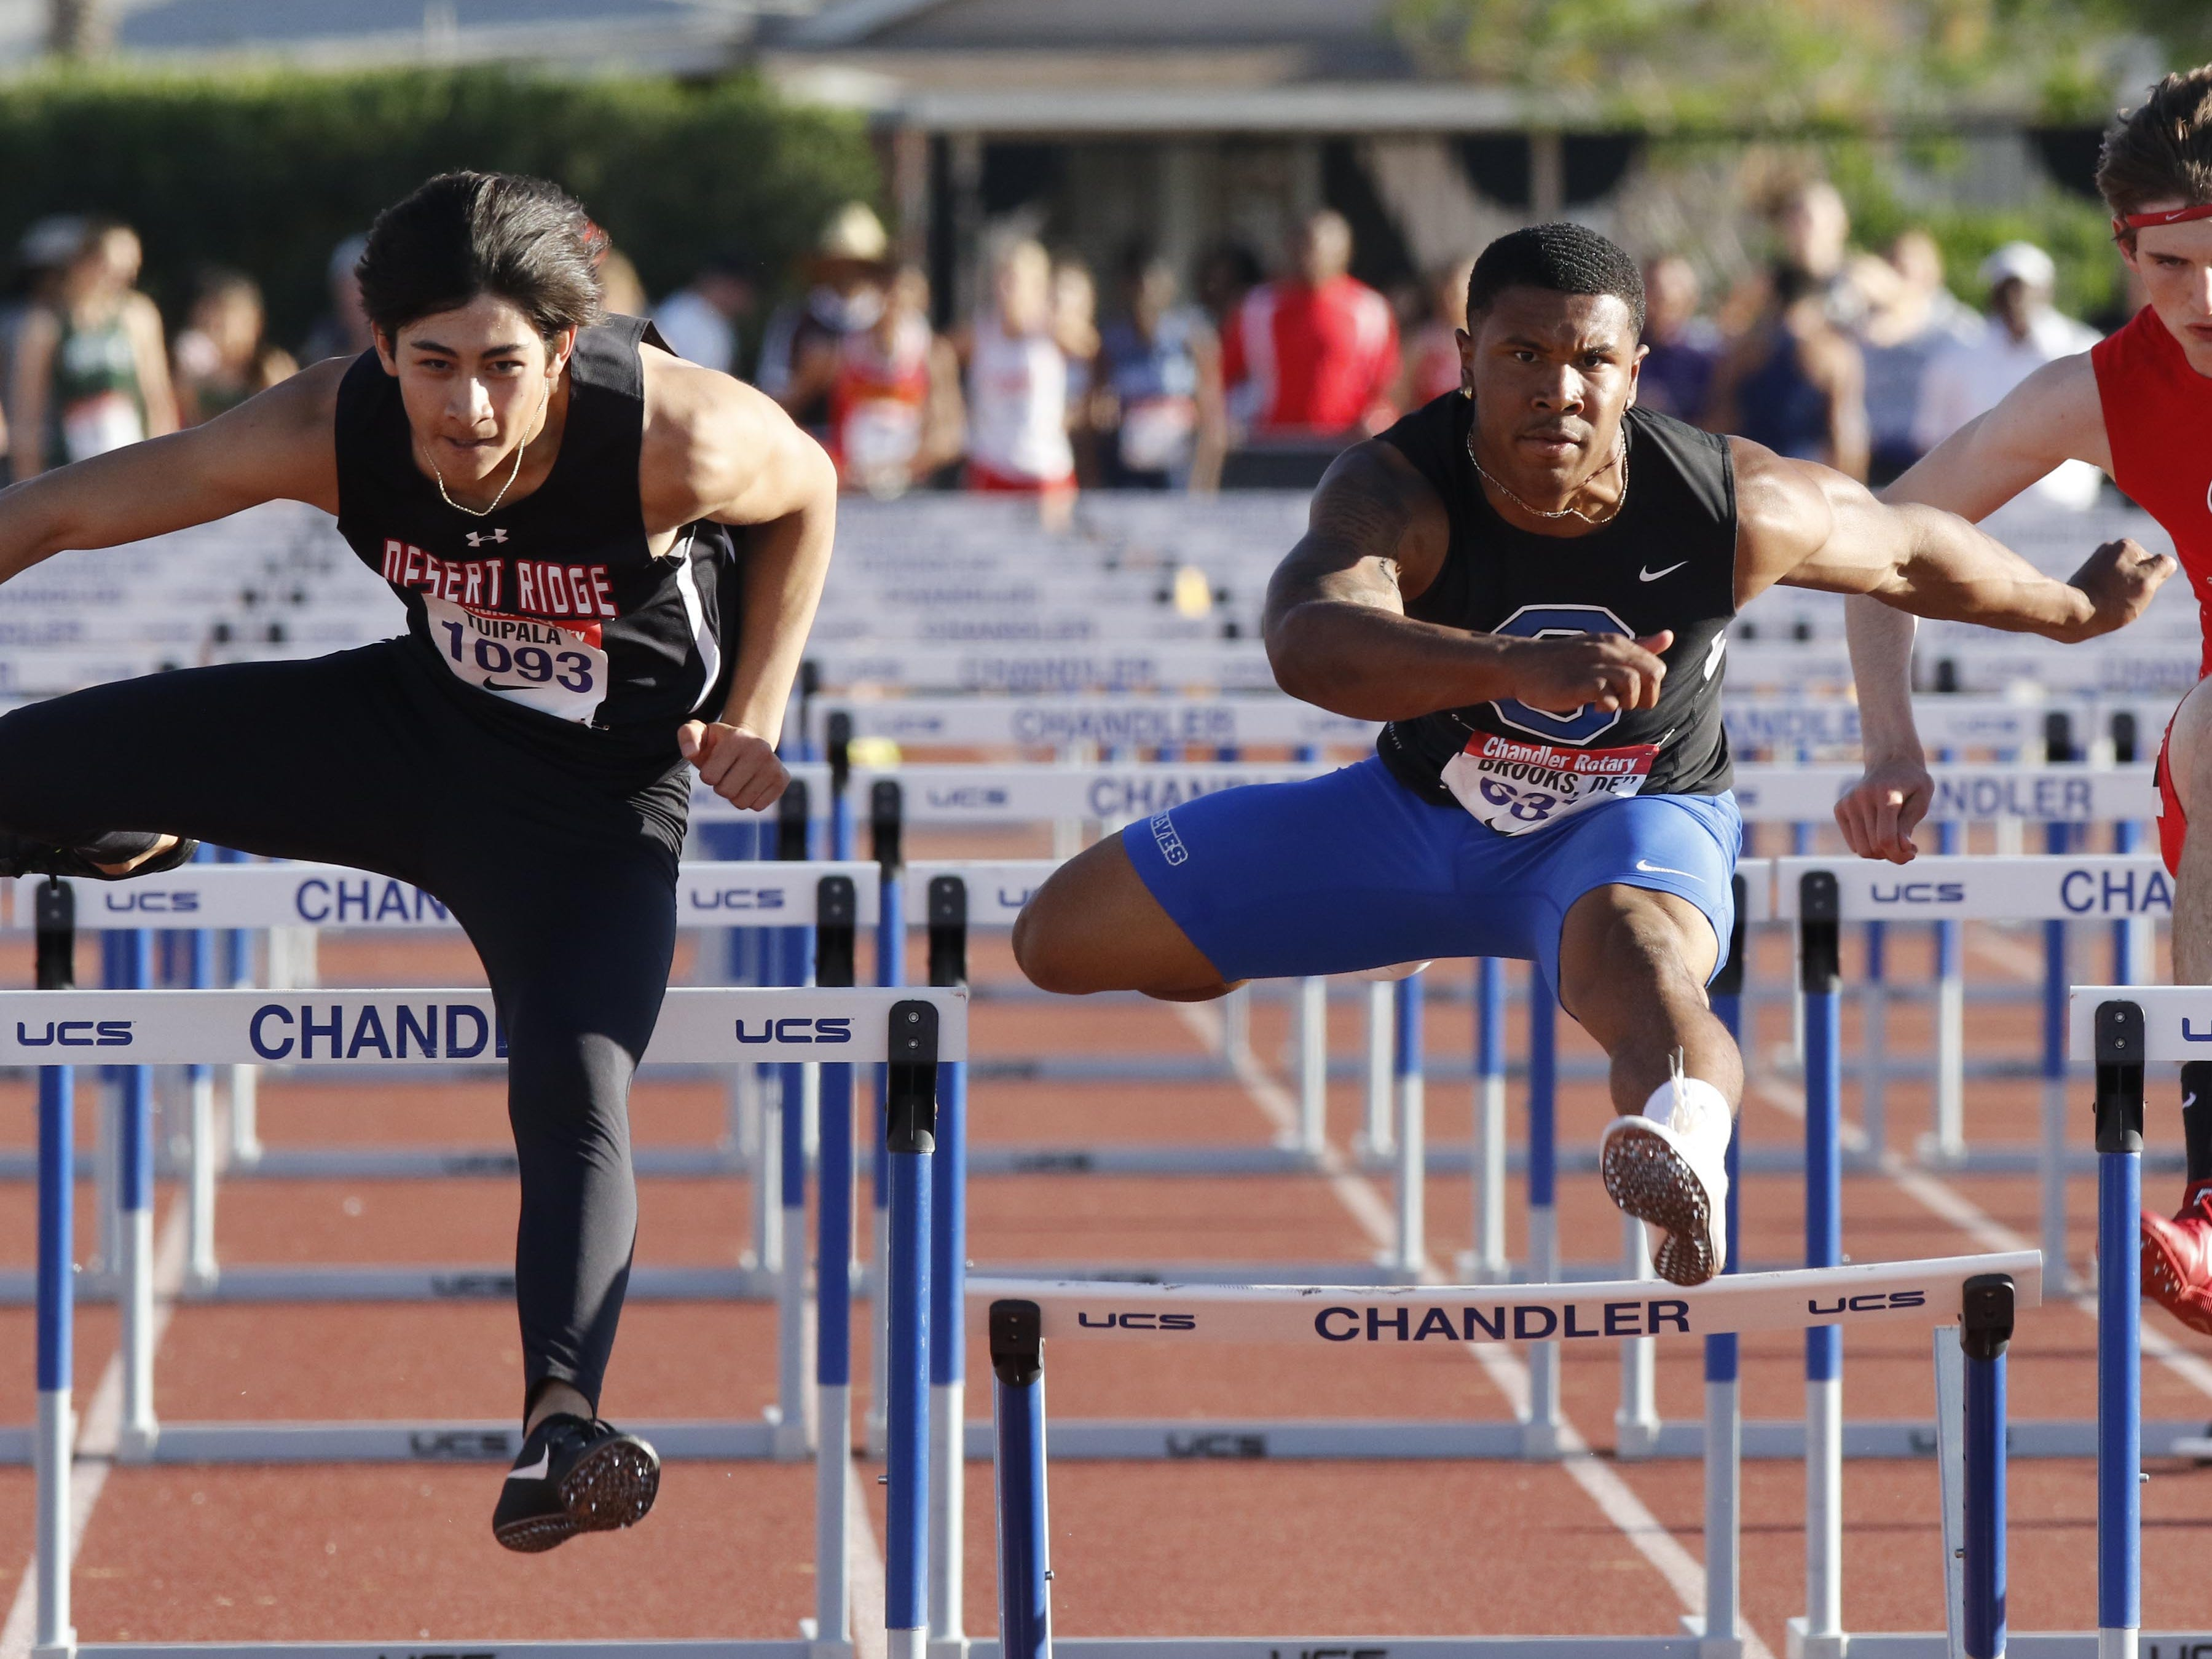 Desert Ridge's Koa Tuipala clears his hurdle while Chandlerr's DeCarlos Brooks clips his hurdle in the 110 Boy's High Hurdles during the 79th Annual Nike Chandler Rotary Invitational  March 23, 2019.  Tuipala won the event in 14.30 over Brooks' 14.31.